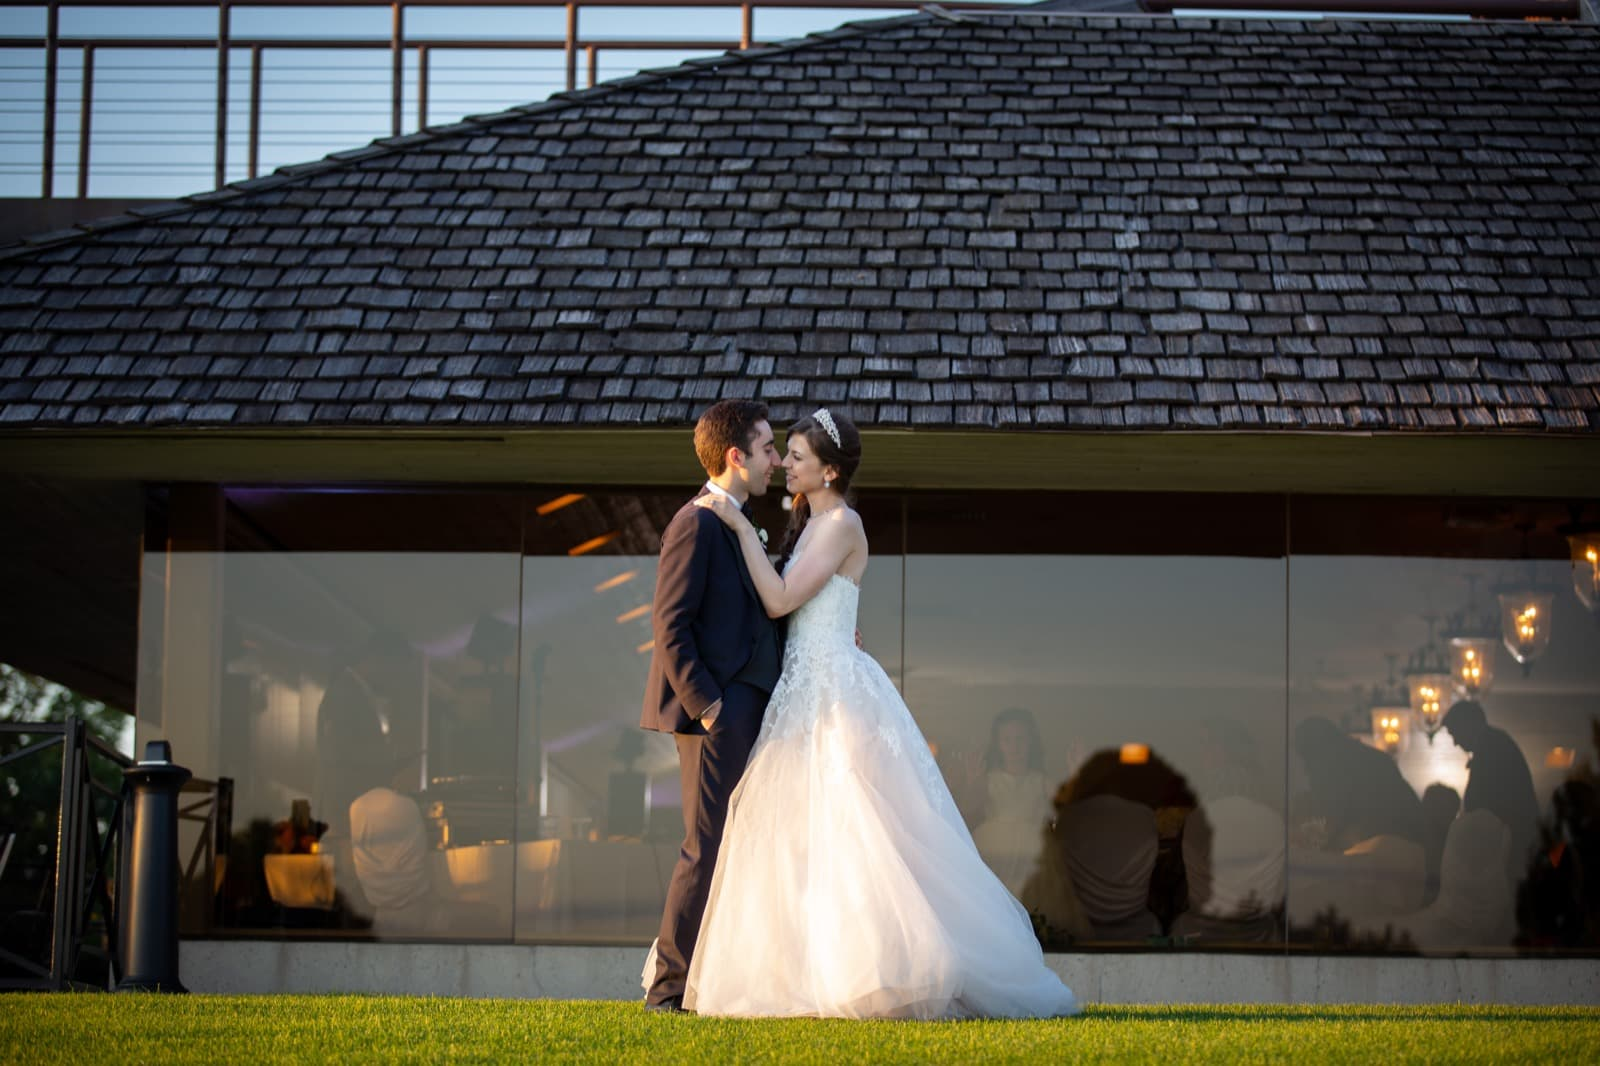 Wedding Pictures at the Glen Abbey Golf Club